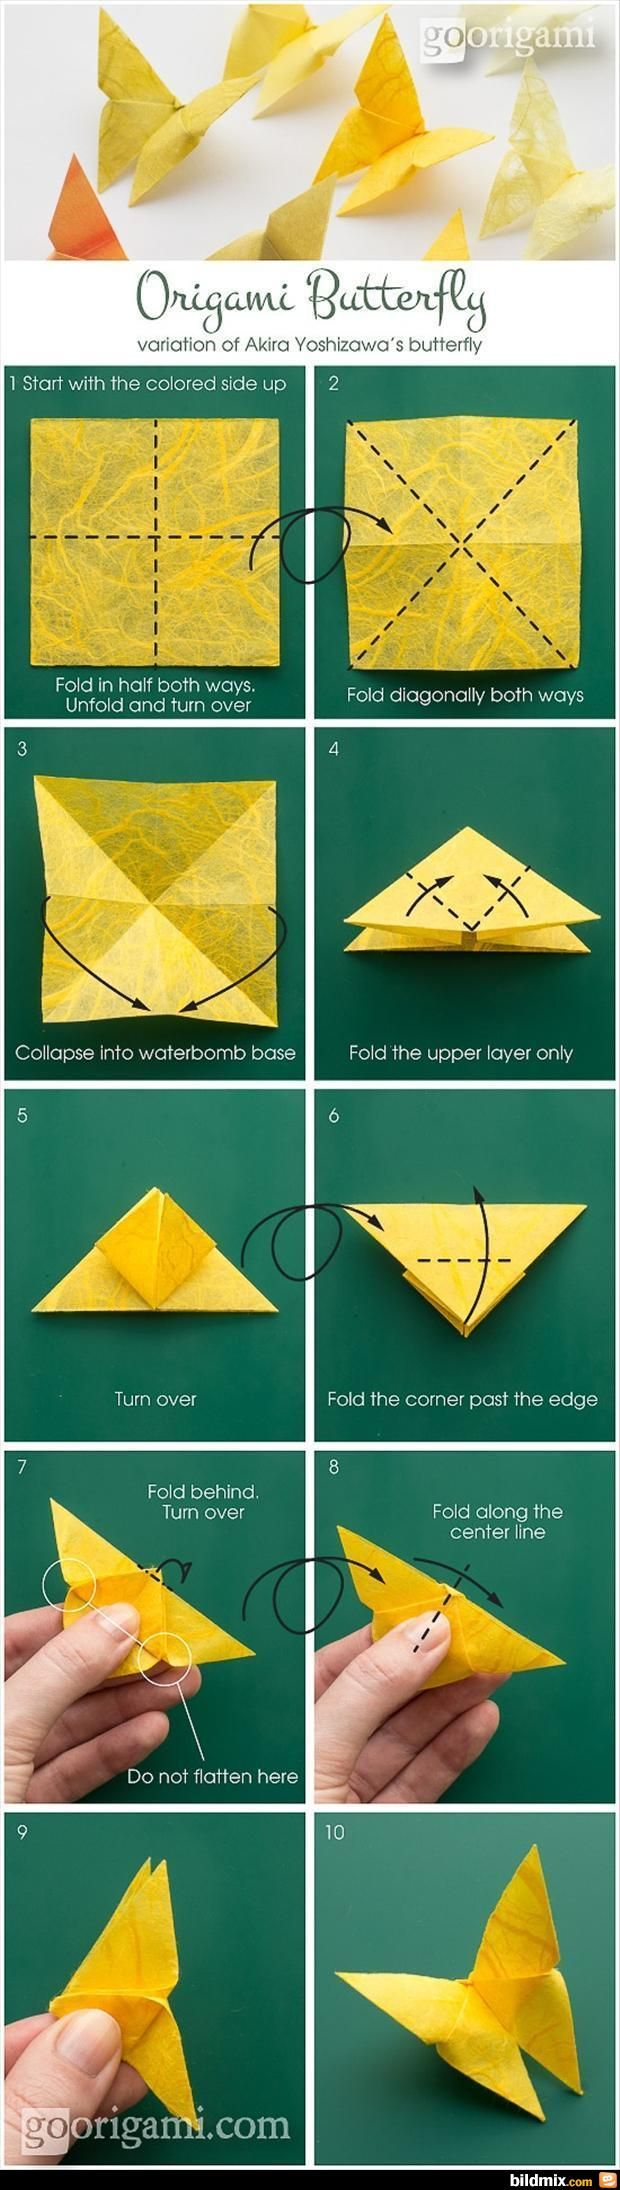 Origami: Butterfly